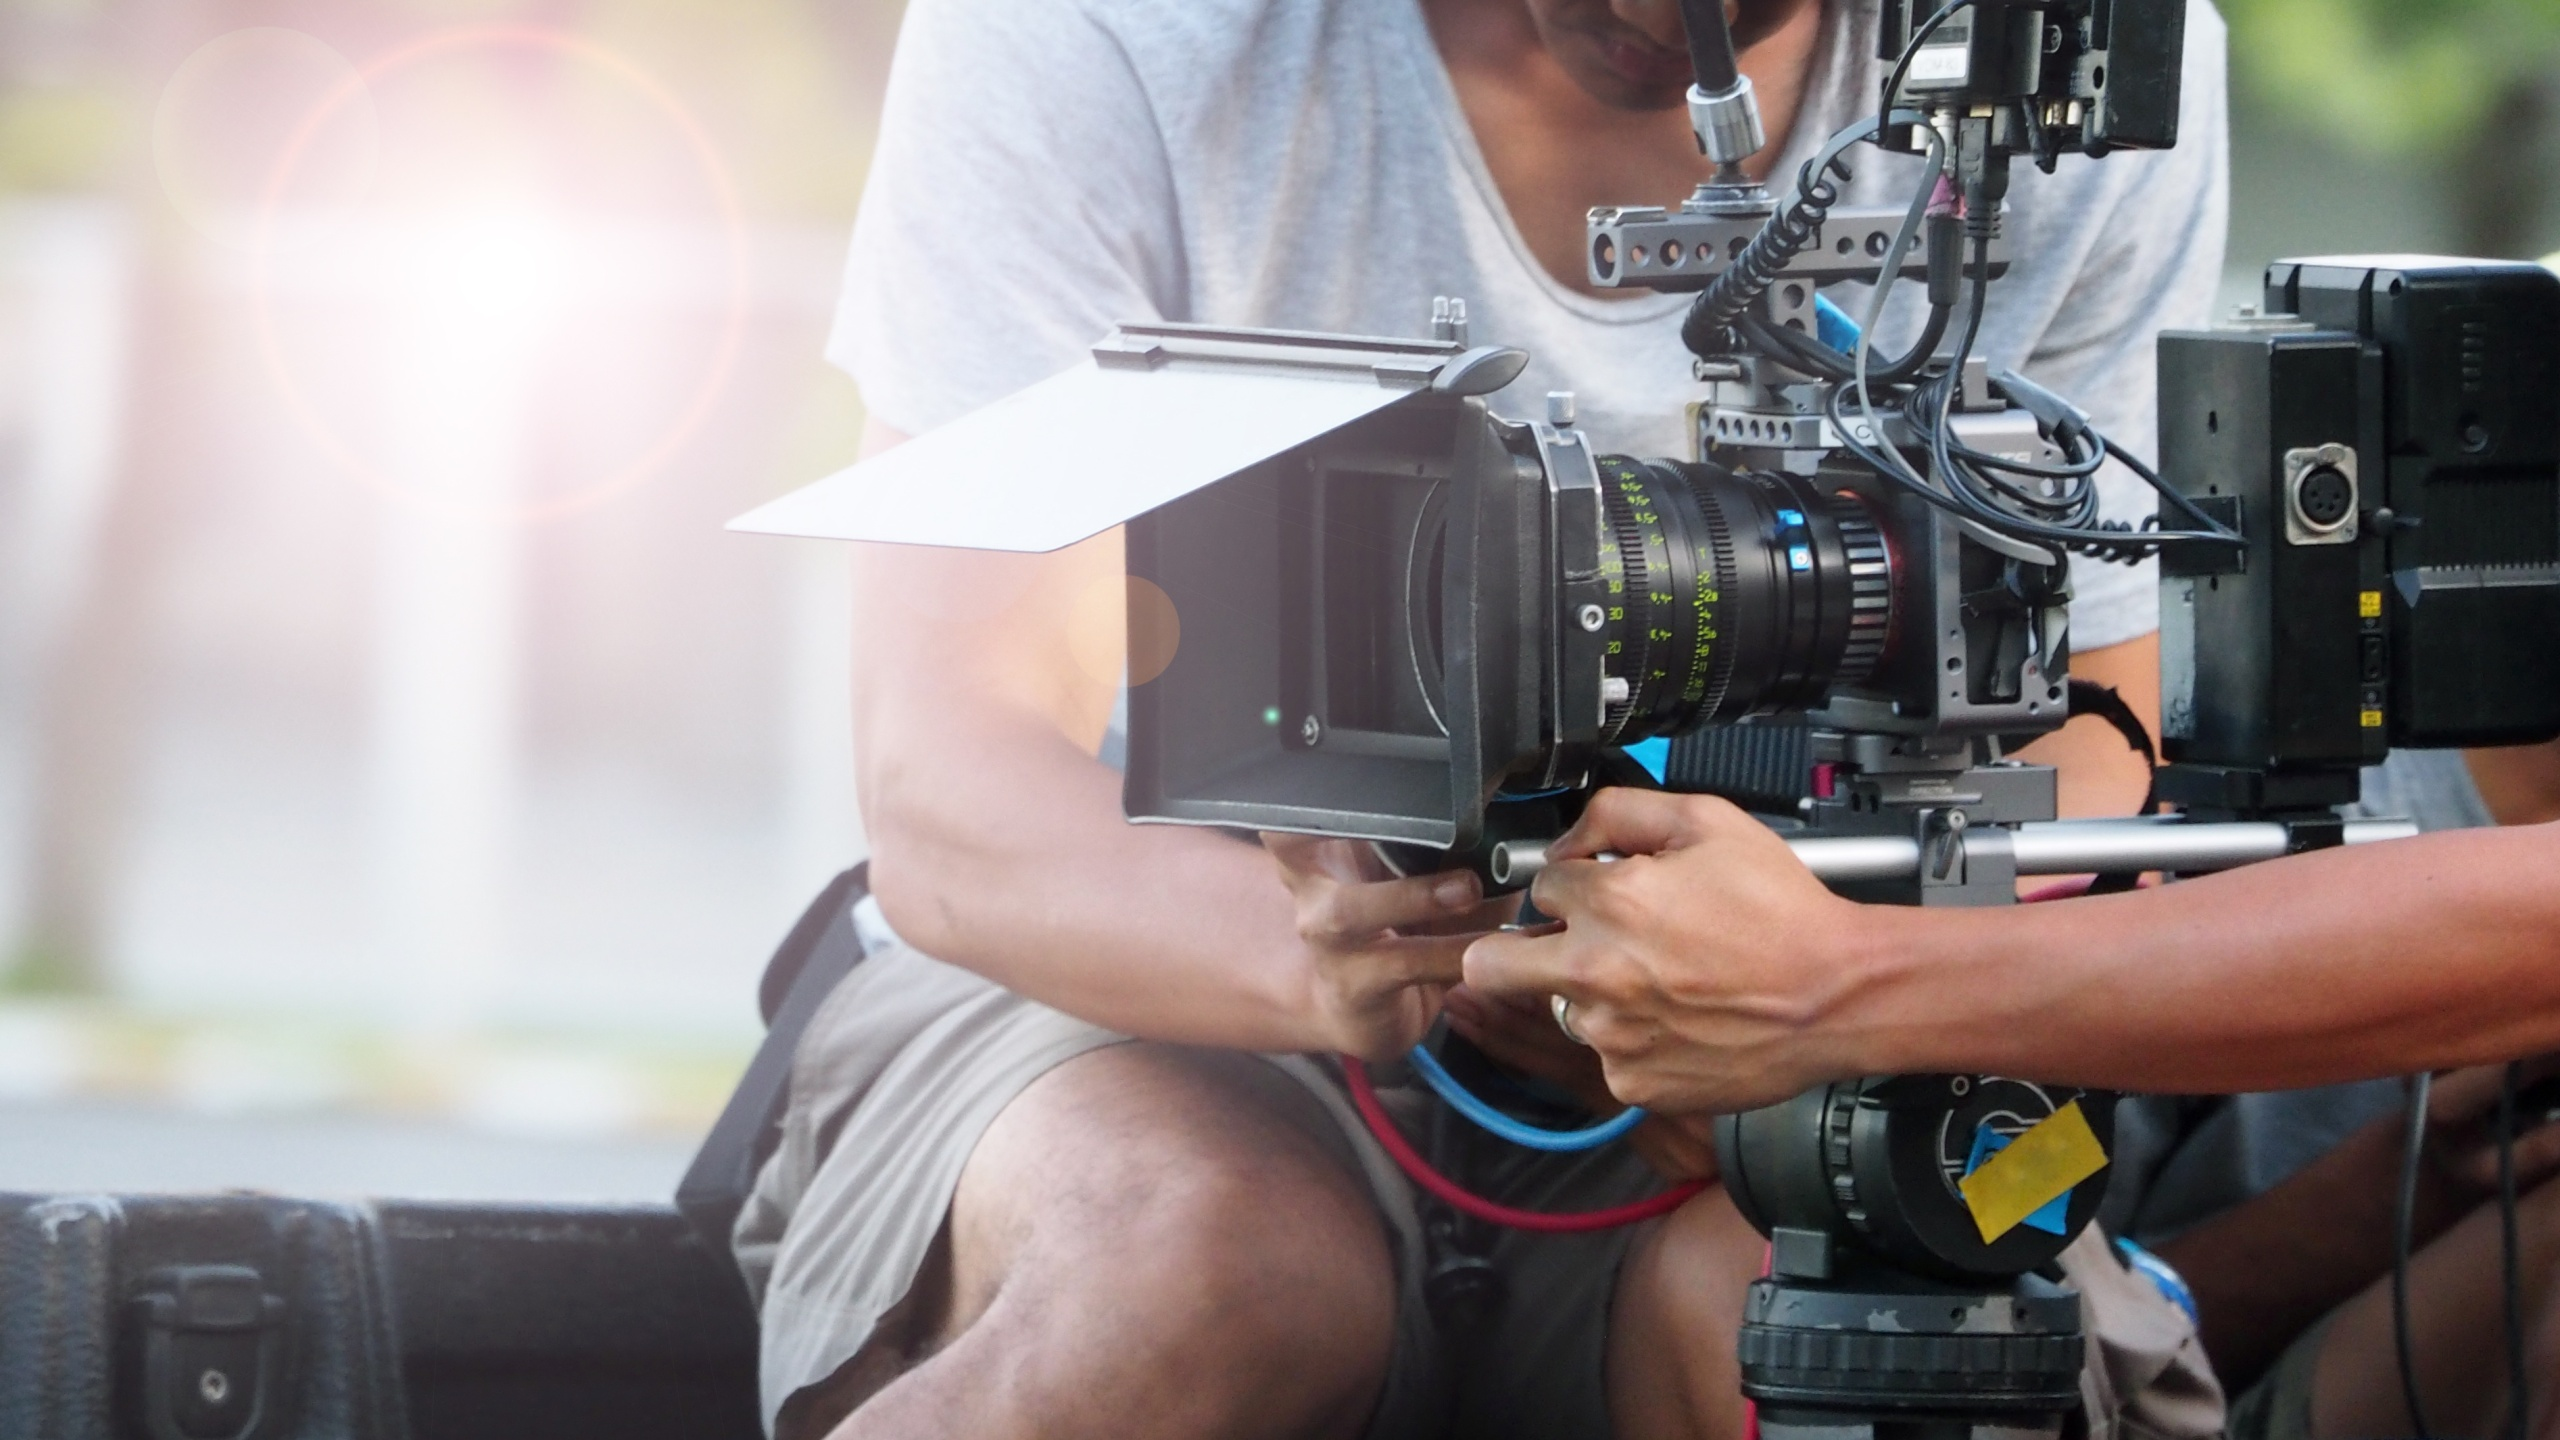 Behind the scenes of movie shooting or video production at outdoor location with high quality camera gimbal tripod equipment set up and professional film crew team on sunny day with flare lighting.